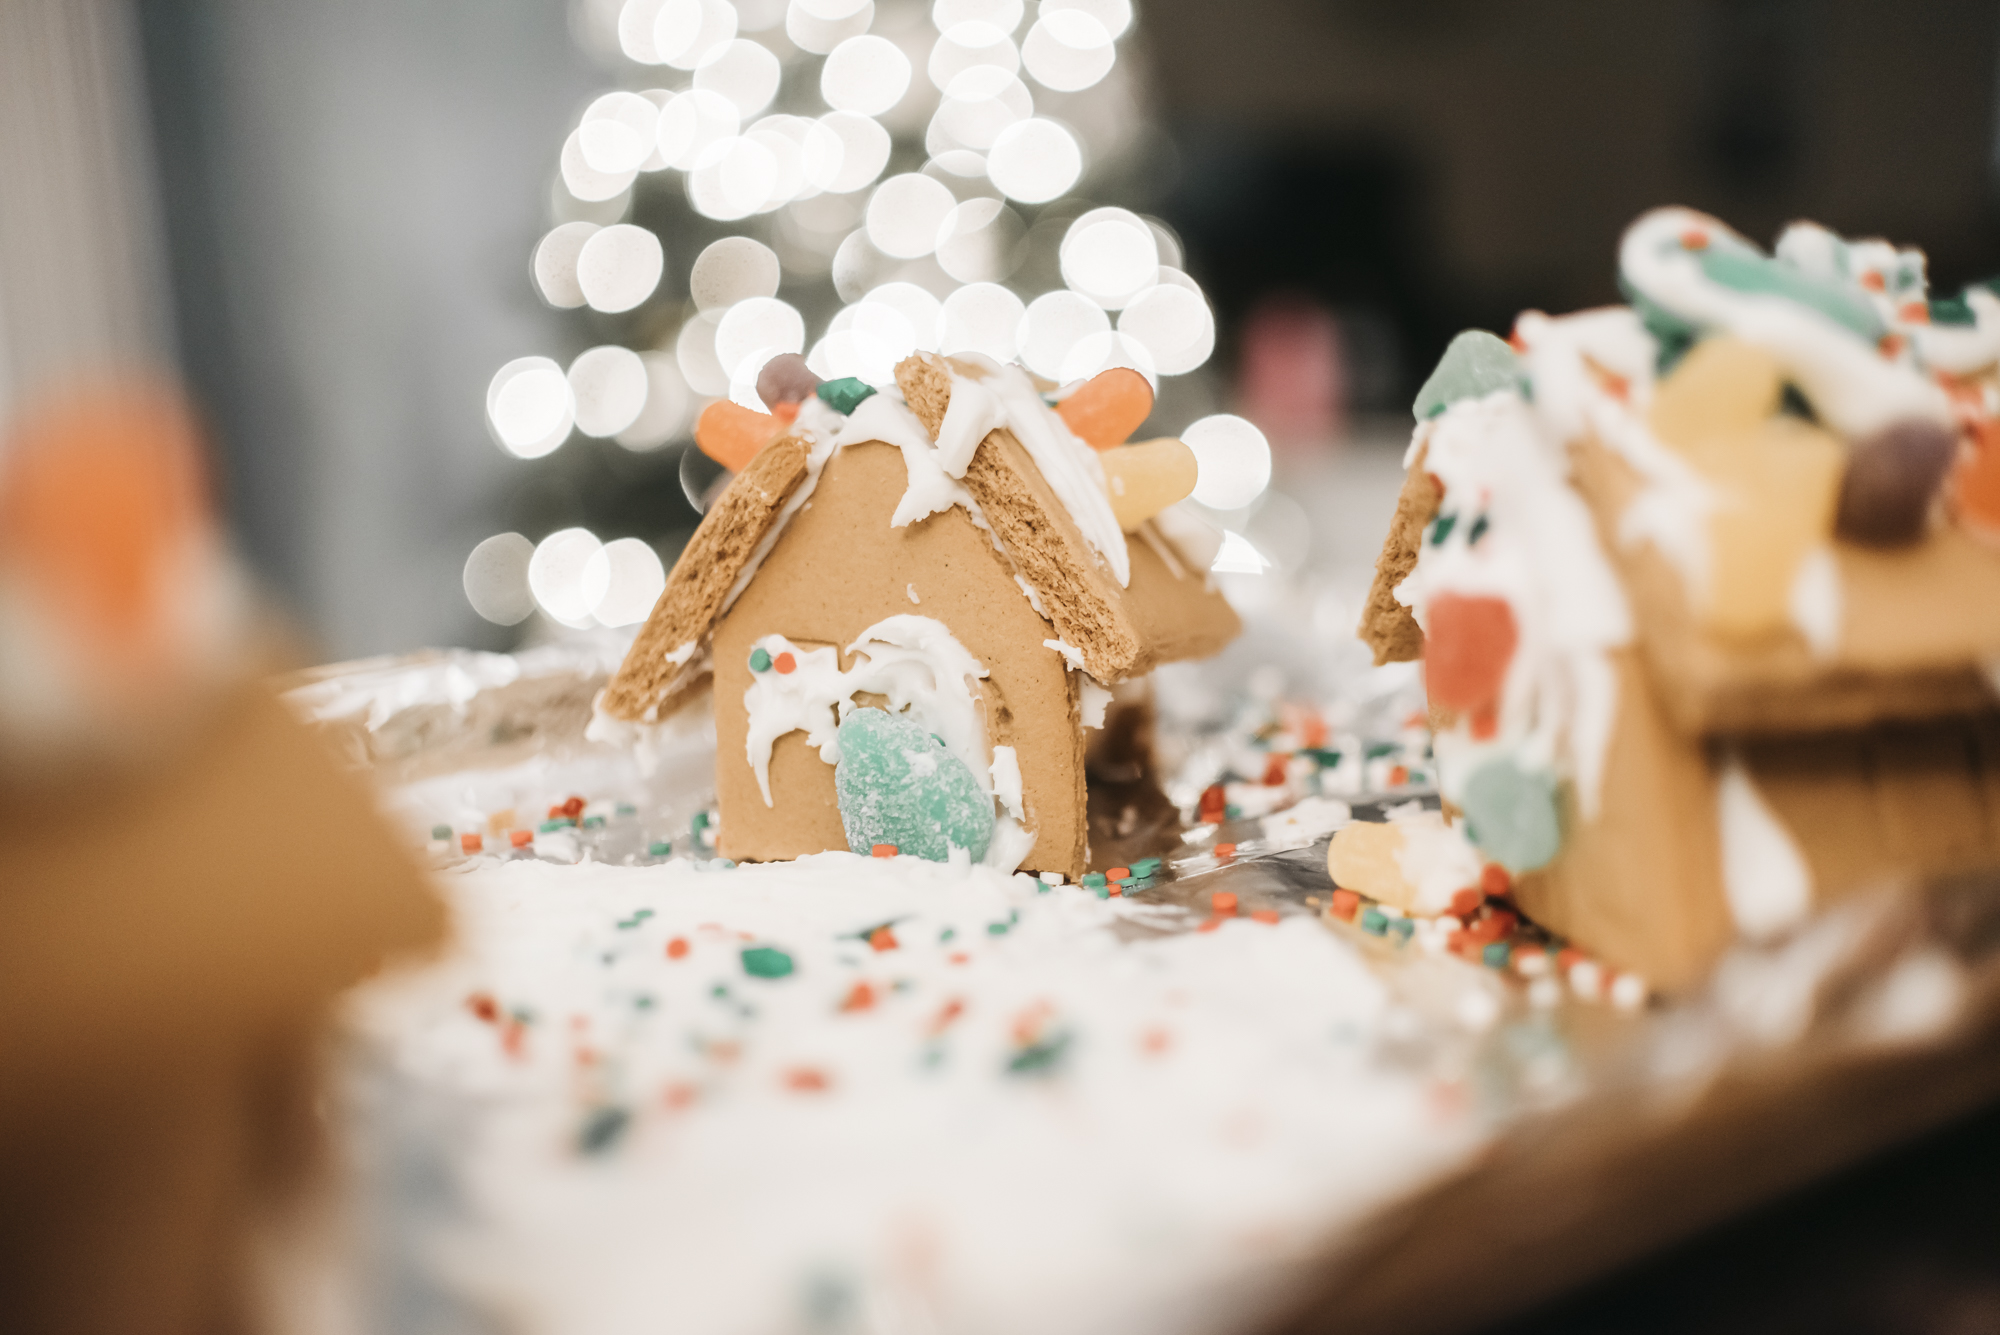 samanthawhitford.com gingerbread village christmas 2018 (15).jpg